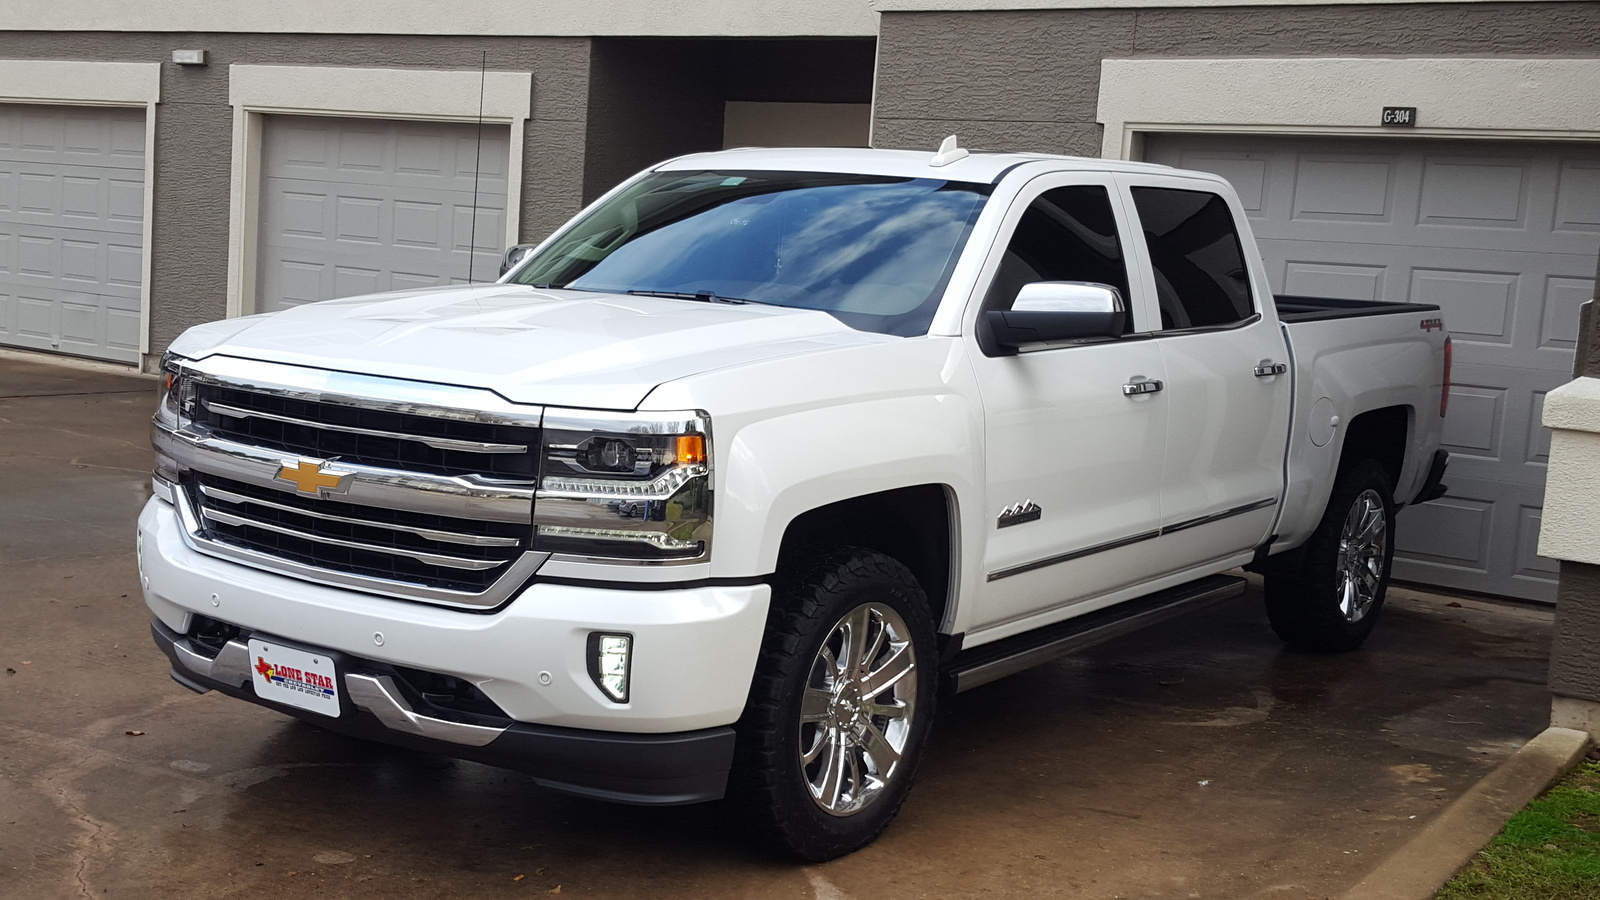 2018 chevrolet silverado 1500 diesel new cars review. Black Bedroom Furniture Sets. Home Design Ideas